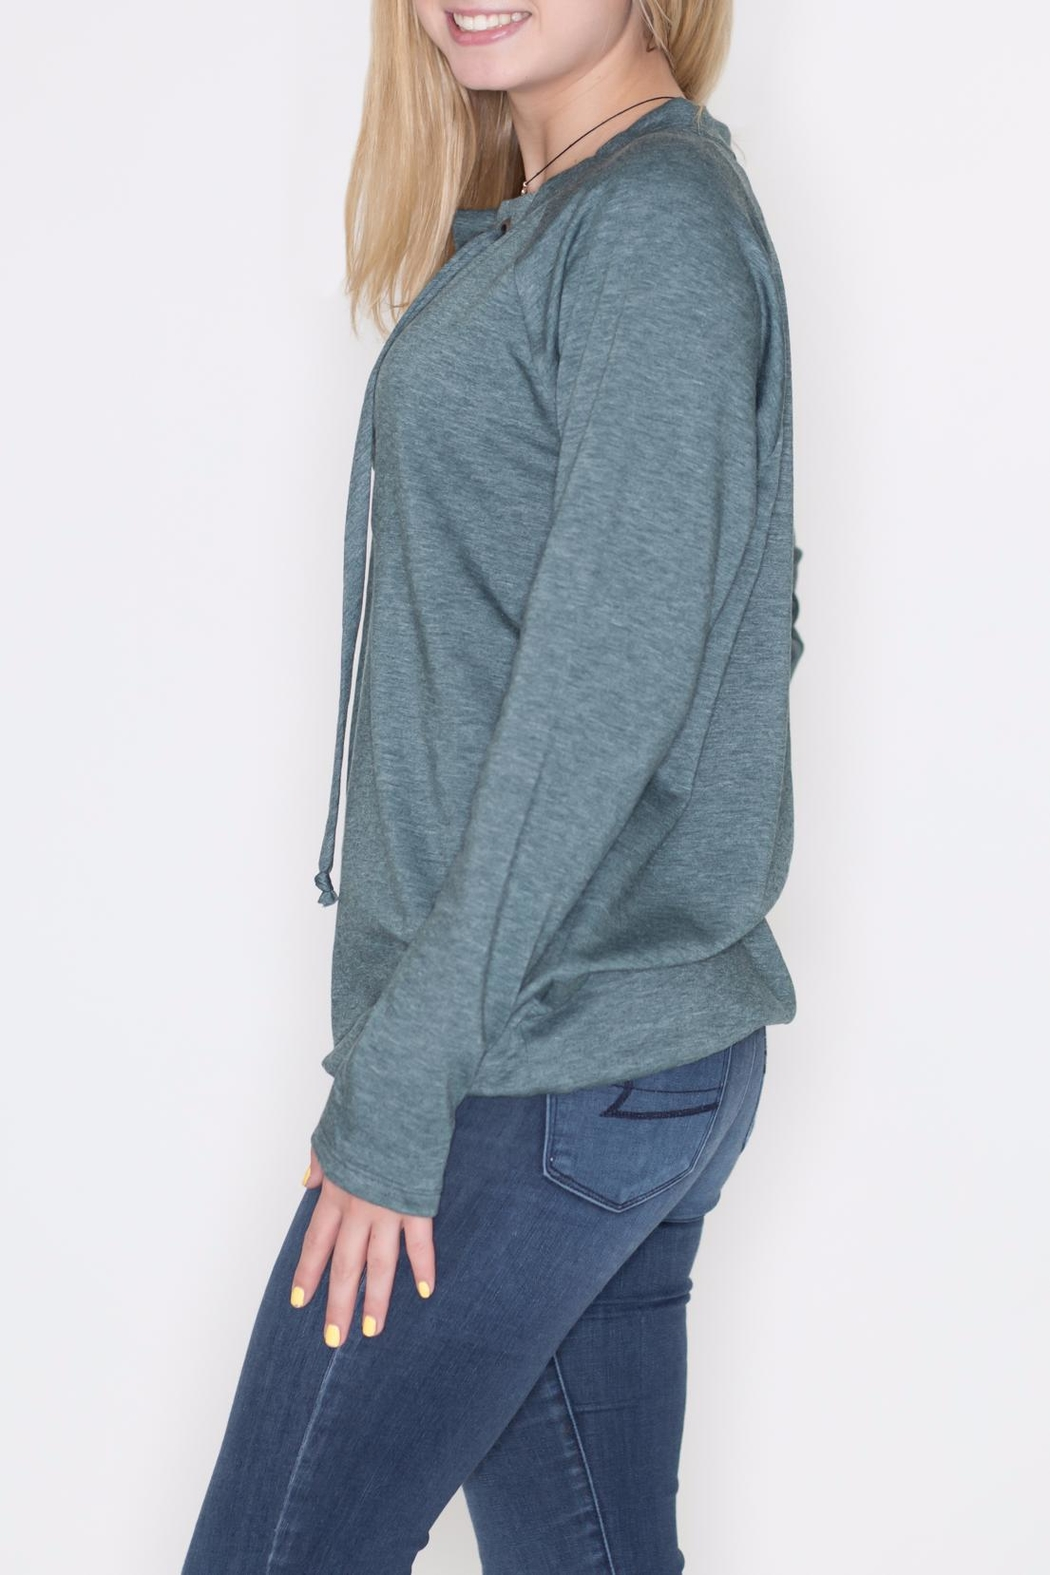 Cherish Lace Up Pullover Top - Front Full Image